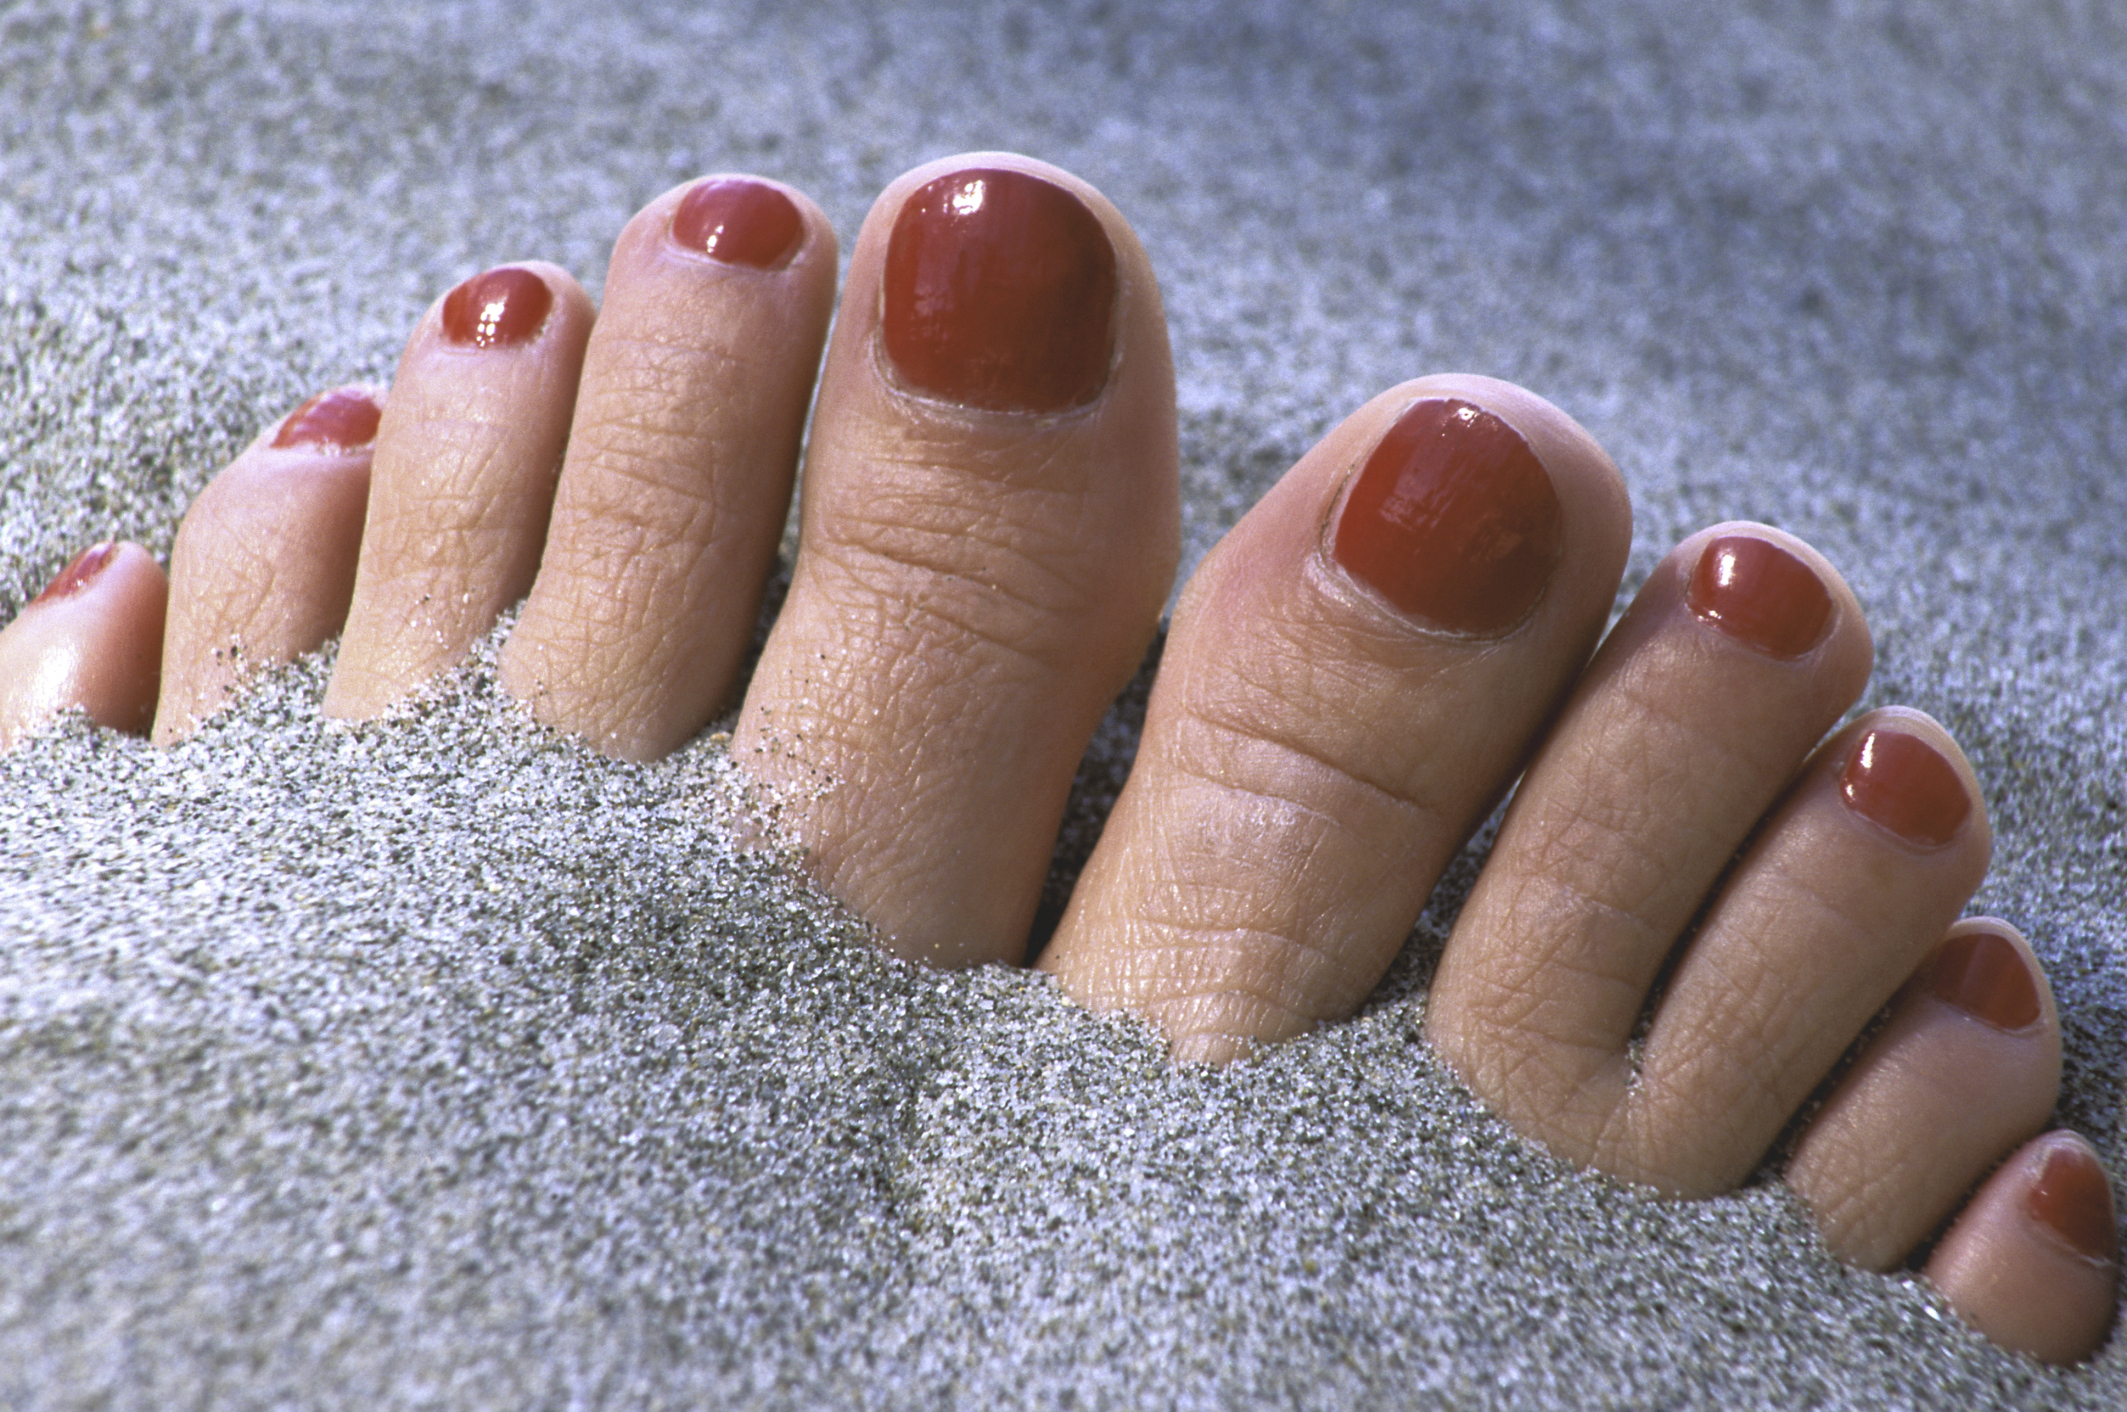 Baking Soda Treatments for Toe Nail Fungus | LIVESTRONG.COM